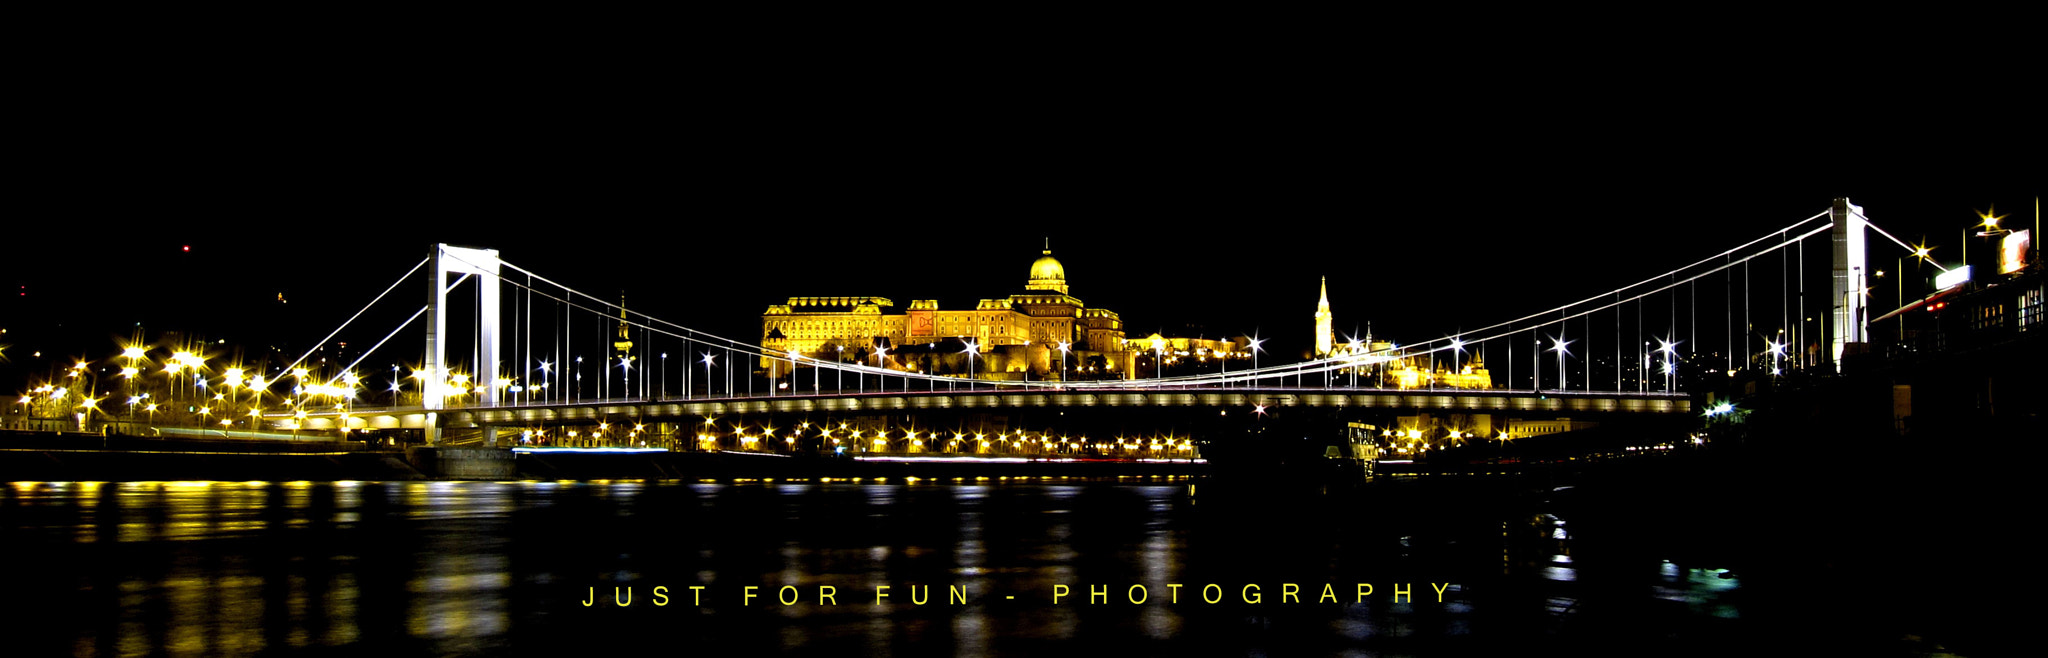 Photograph Elizabeth bridge - Budapest by Just for fun on 500px